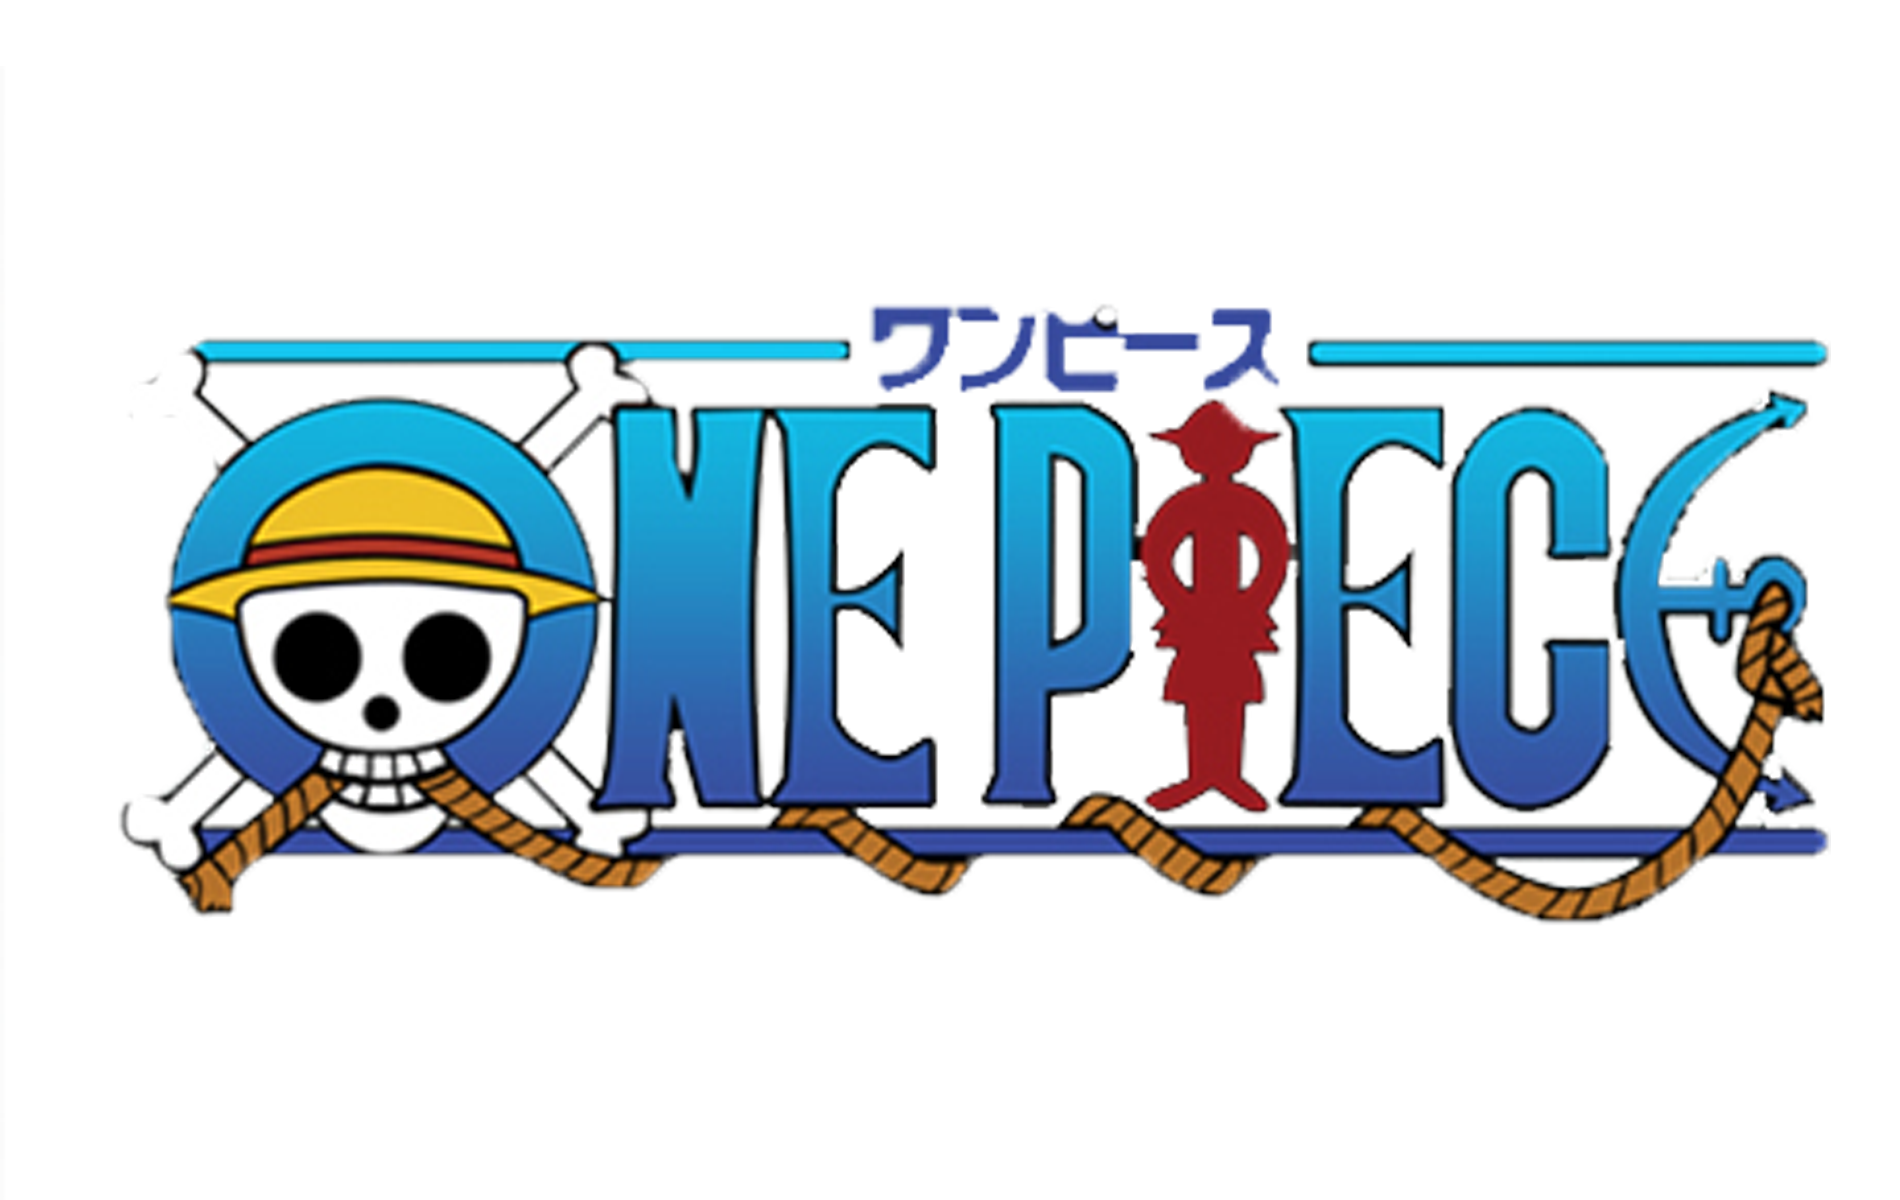 One Piece Logo Transparent - One Piece Logo Wallpaper And Background #492366 - PNG Images - PNGio